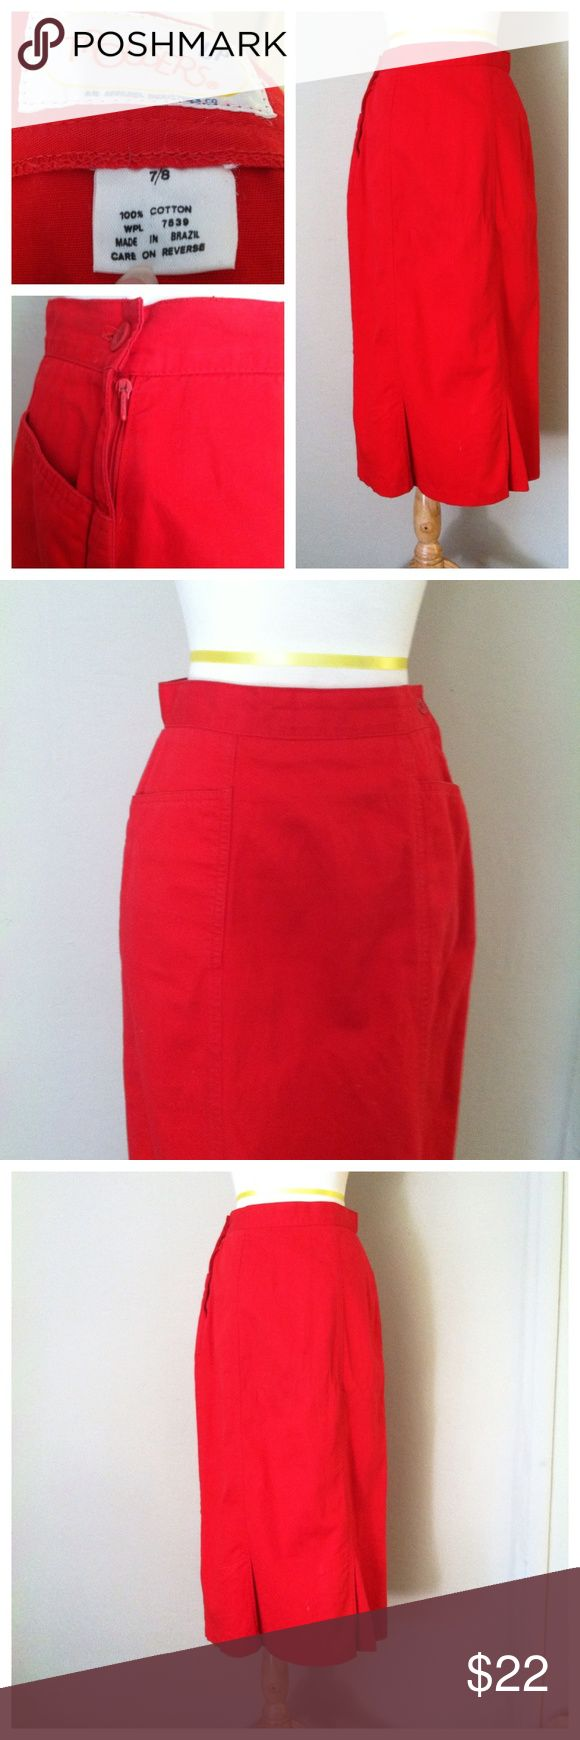 Hot for Teacher Red Pencil Skirt Made by Trousers Up Vintage pencil skirt. Made in Brazil all cotton Vintage Skirts